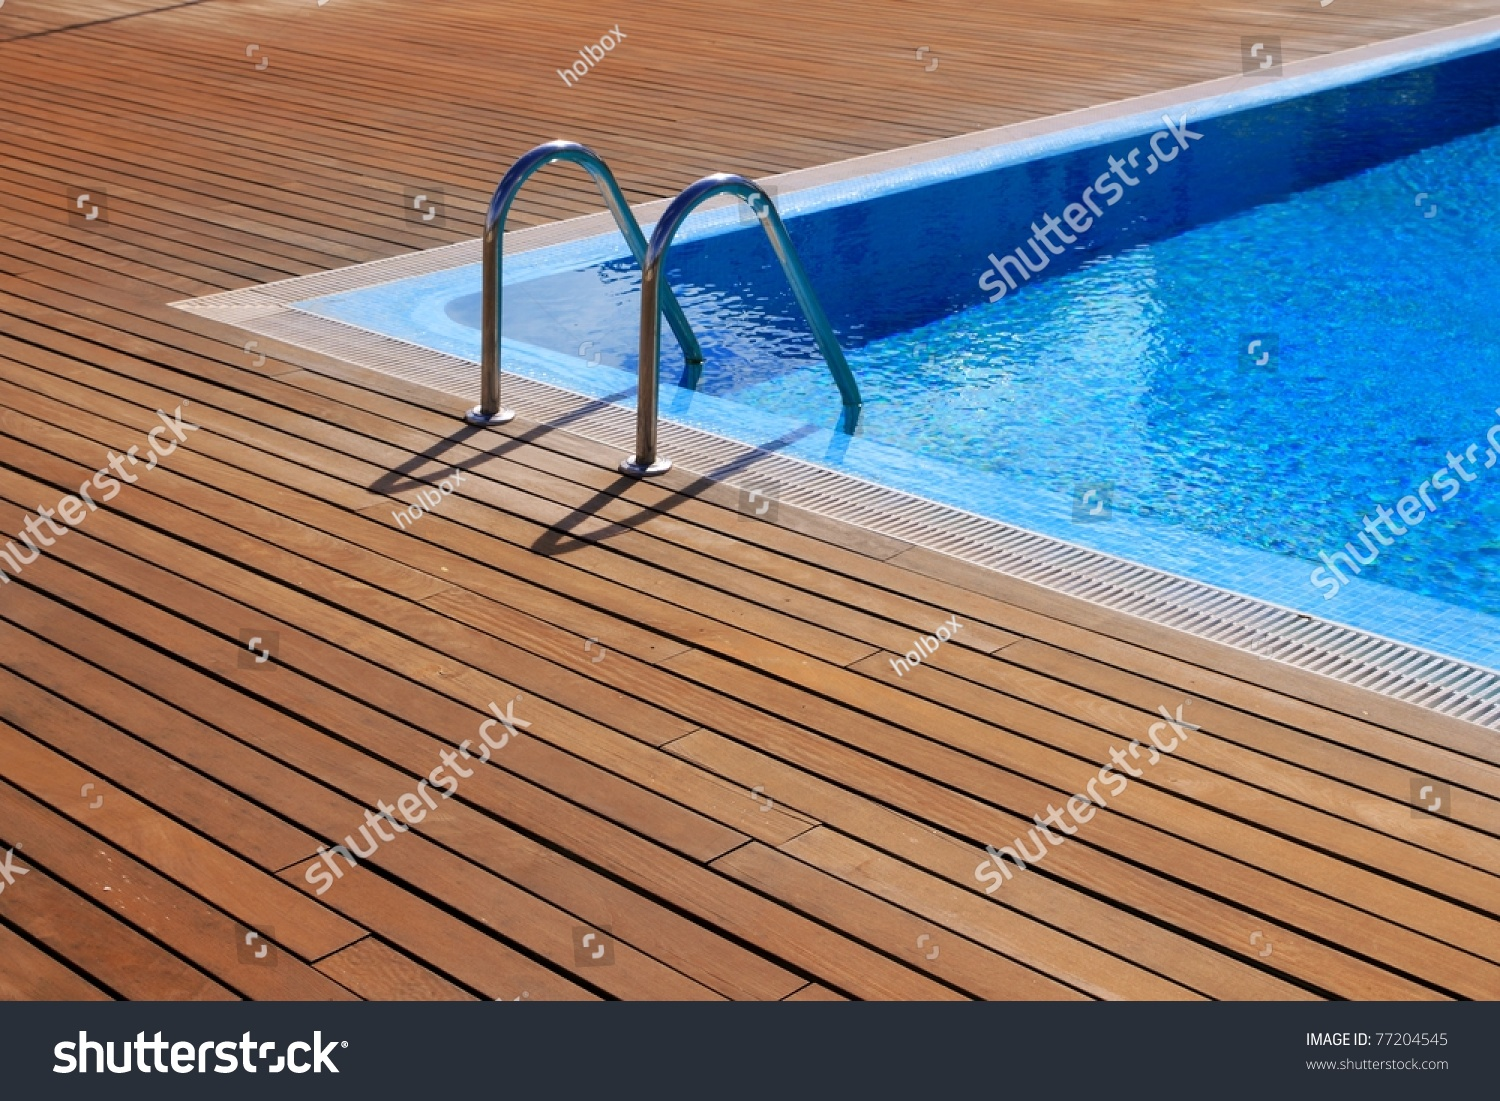 Blue Swimming Pool Teak Wood Flooring Stock Photo 77204545 Shutterstock